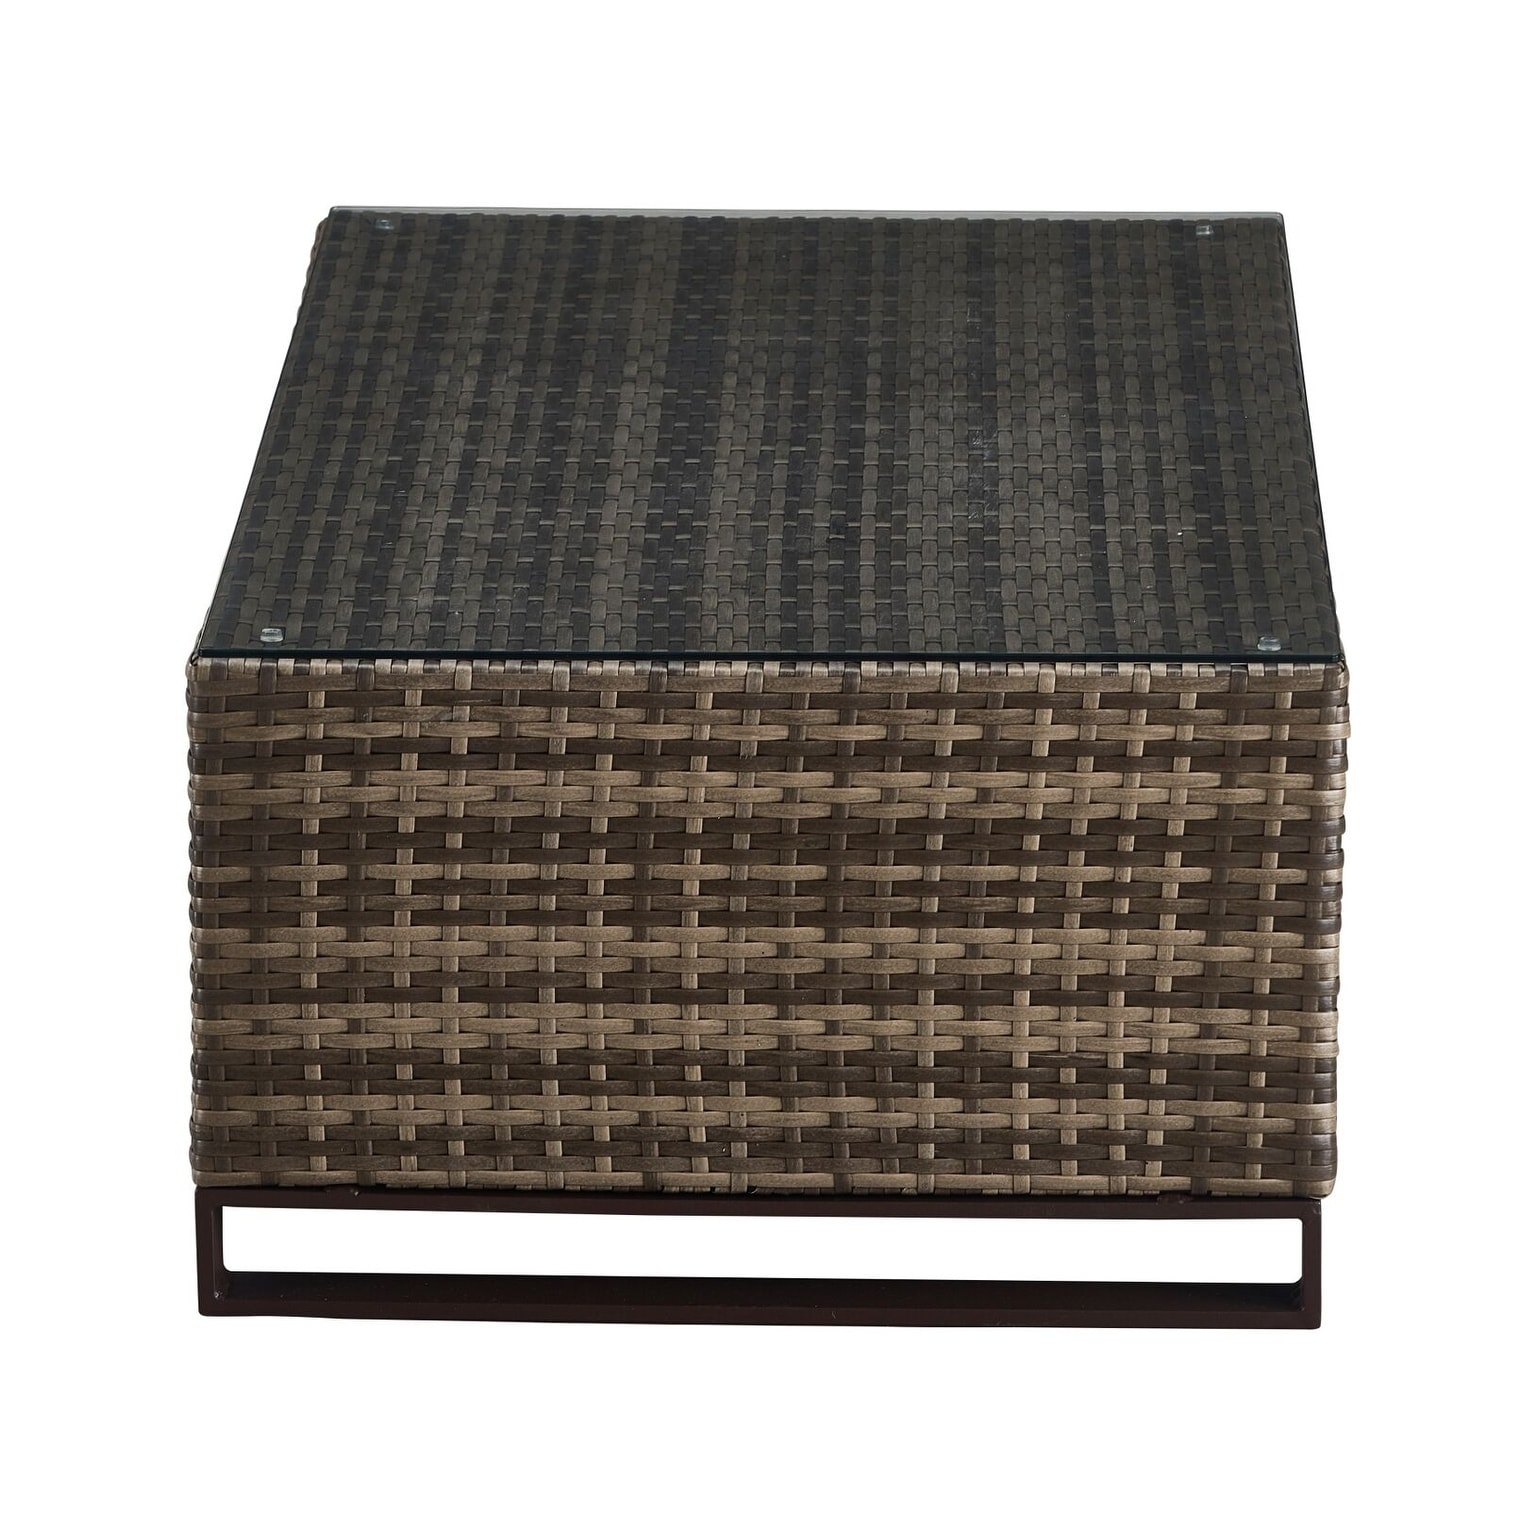 Tommy Hilfiger Oceanside Outdoor Coffee Table with Storage Gray